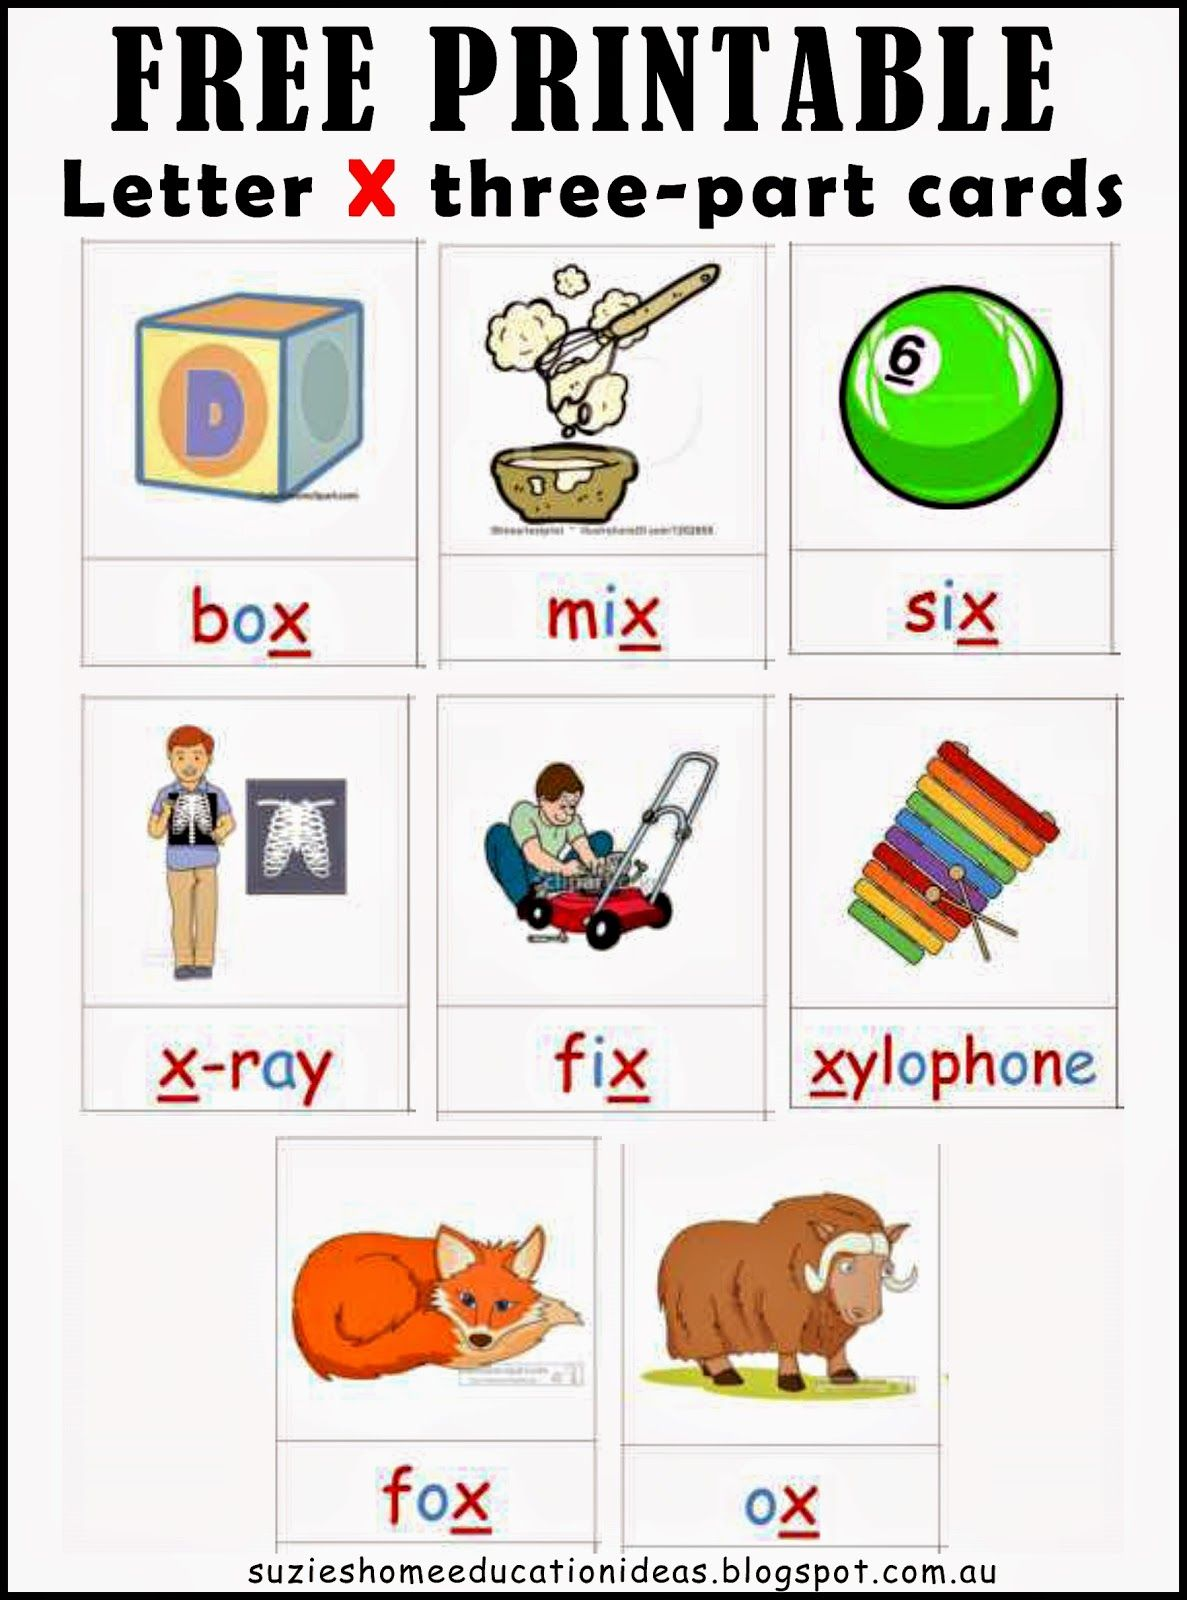 Letter X Printable Cards and Activity Ideas Home